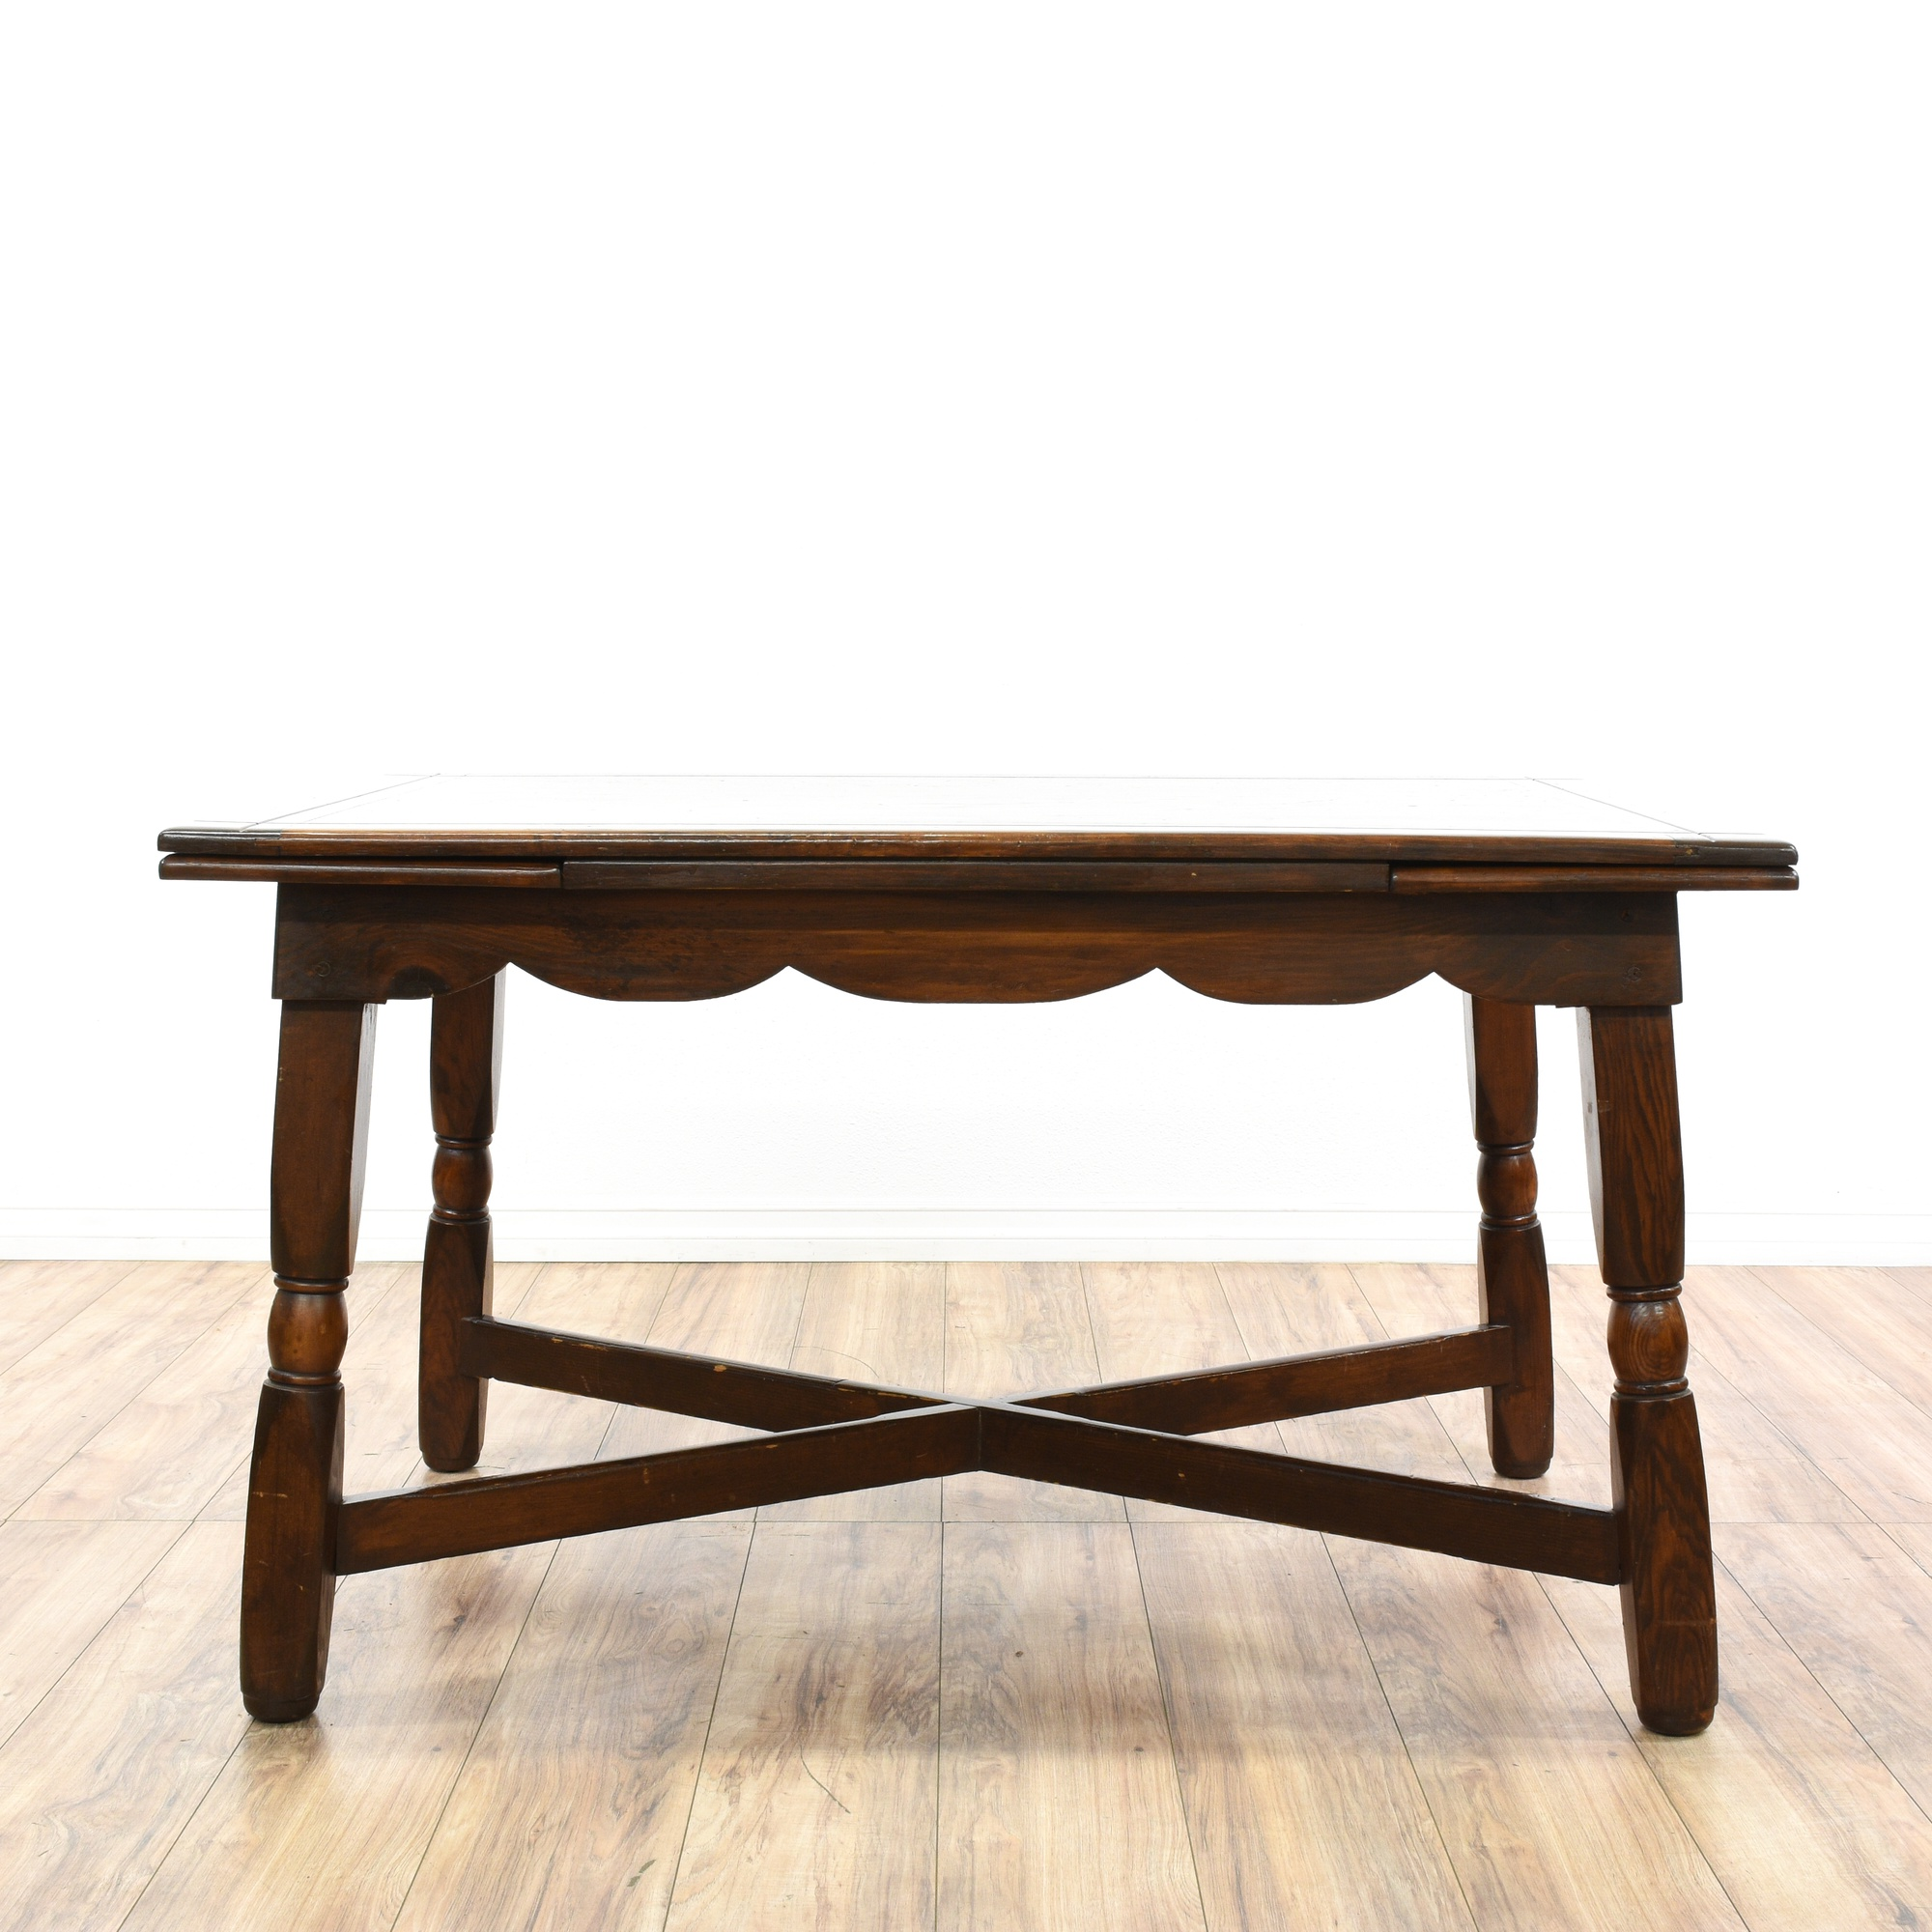 Dining Table w Pull Out Extension Leaves